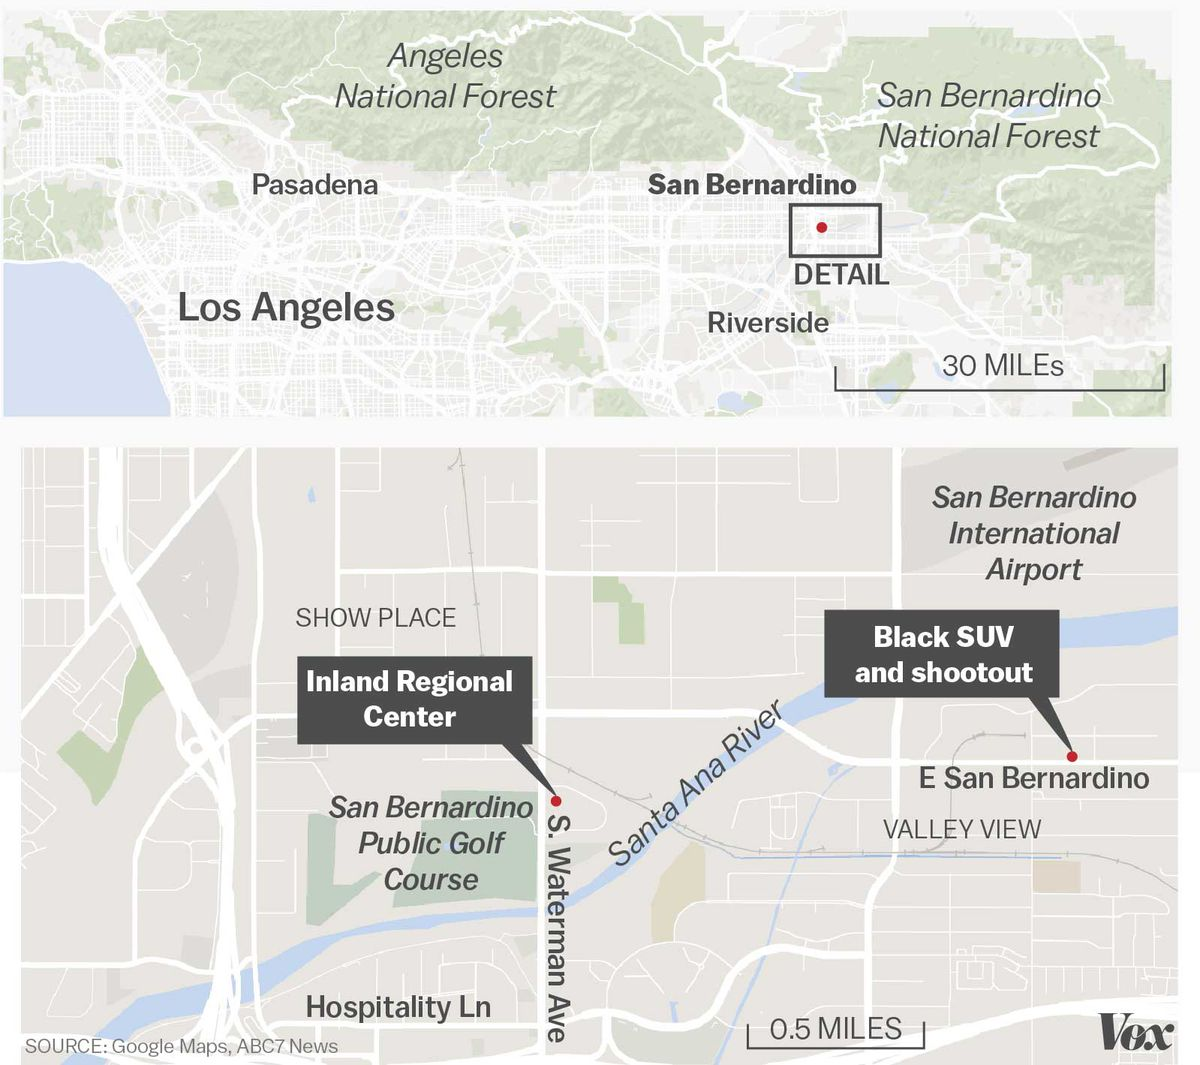 the location of the mass shooting and subsequent shootout in san bernardino california